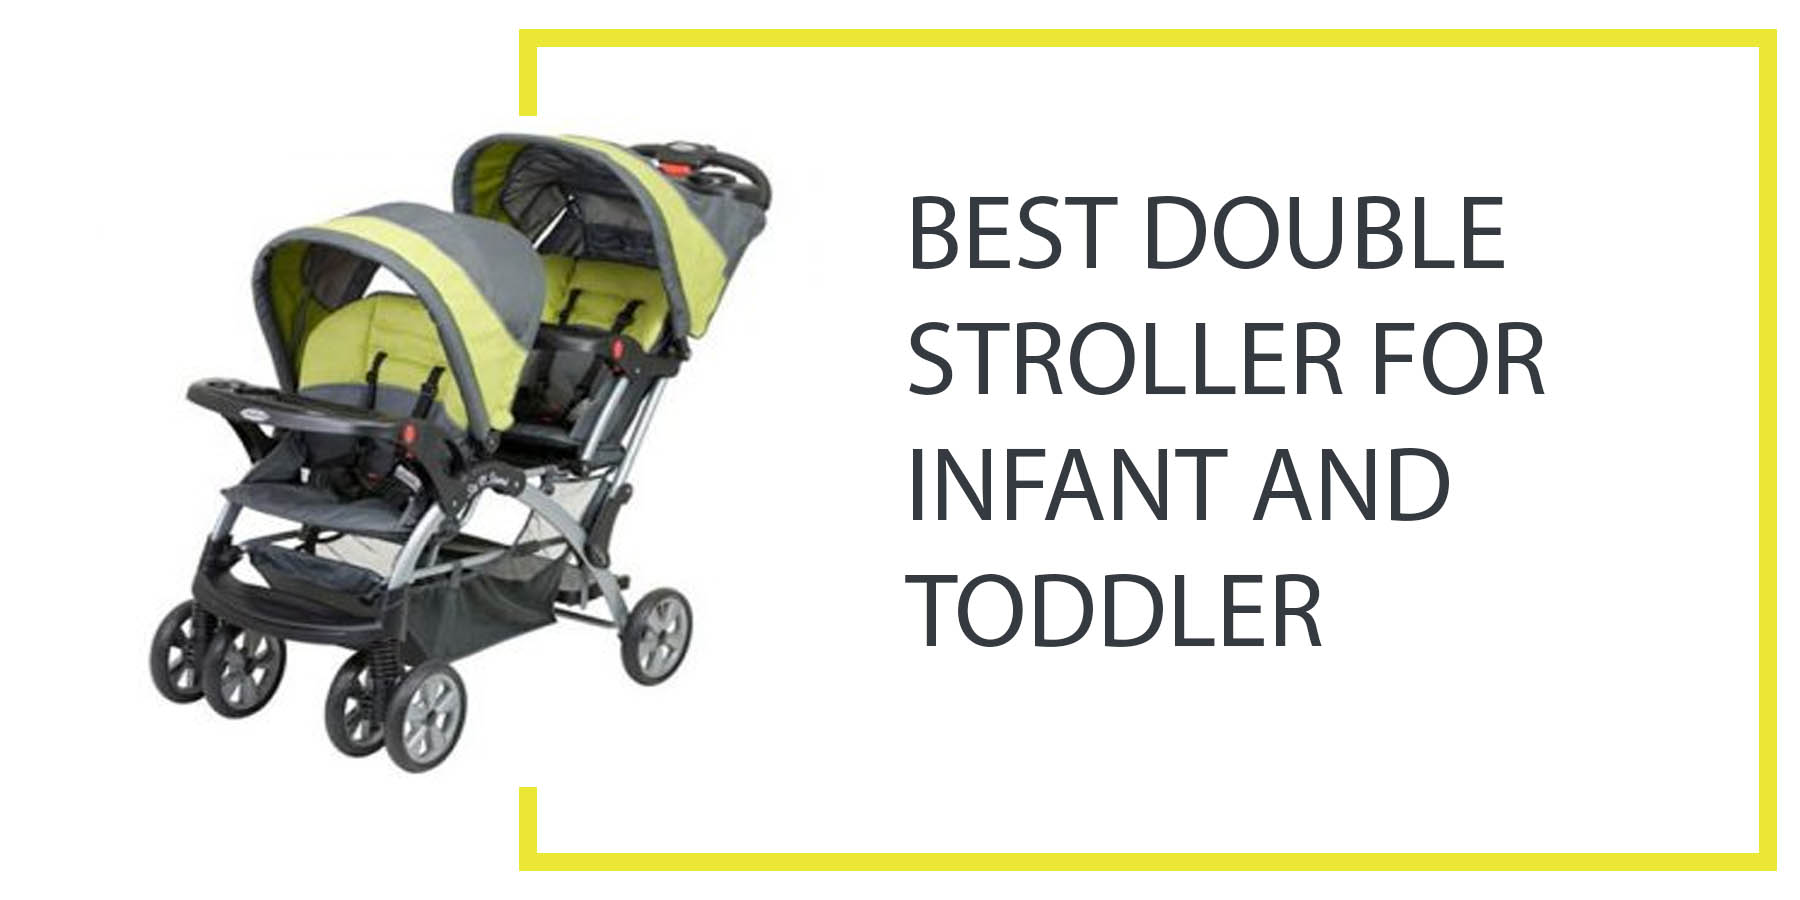 Infant Seat Double Stroller Best Double Stroller For Infant And Toddler Best Double